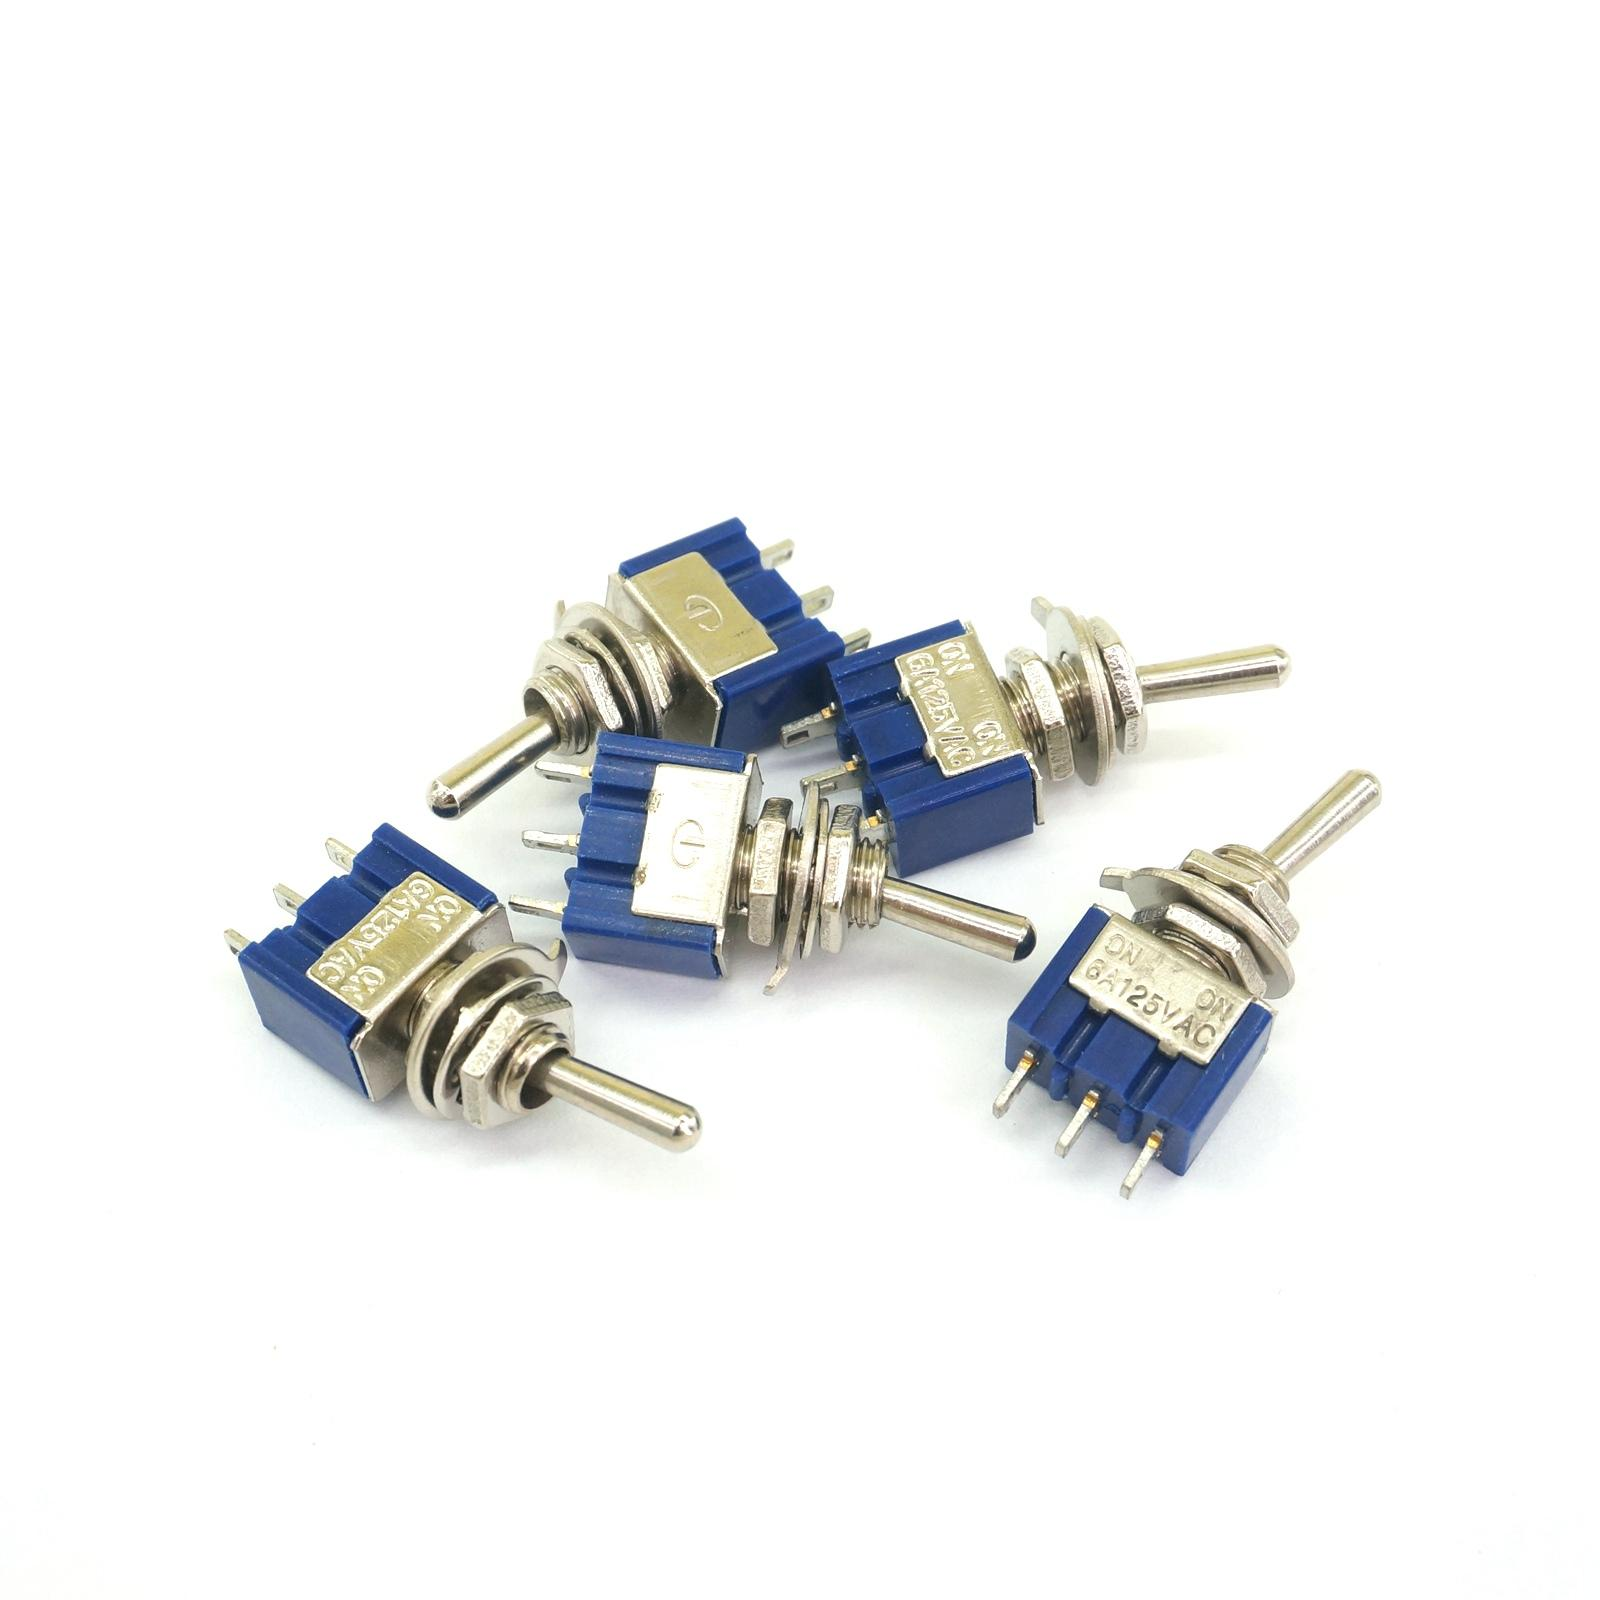 hight resolution of 5pcs mts 102 3 pin single pole double throw on on 6a 125vac mini toggle switch